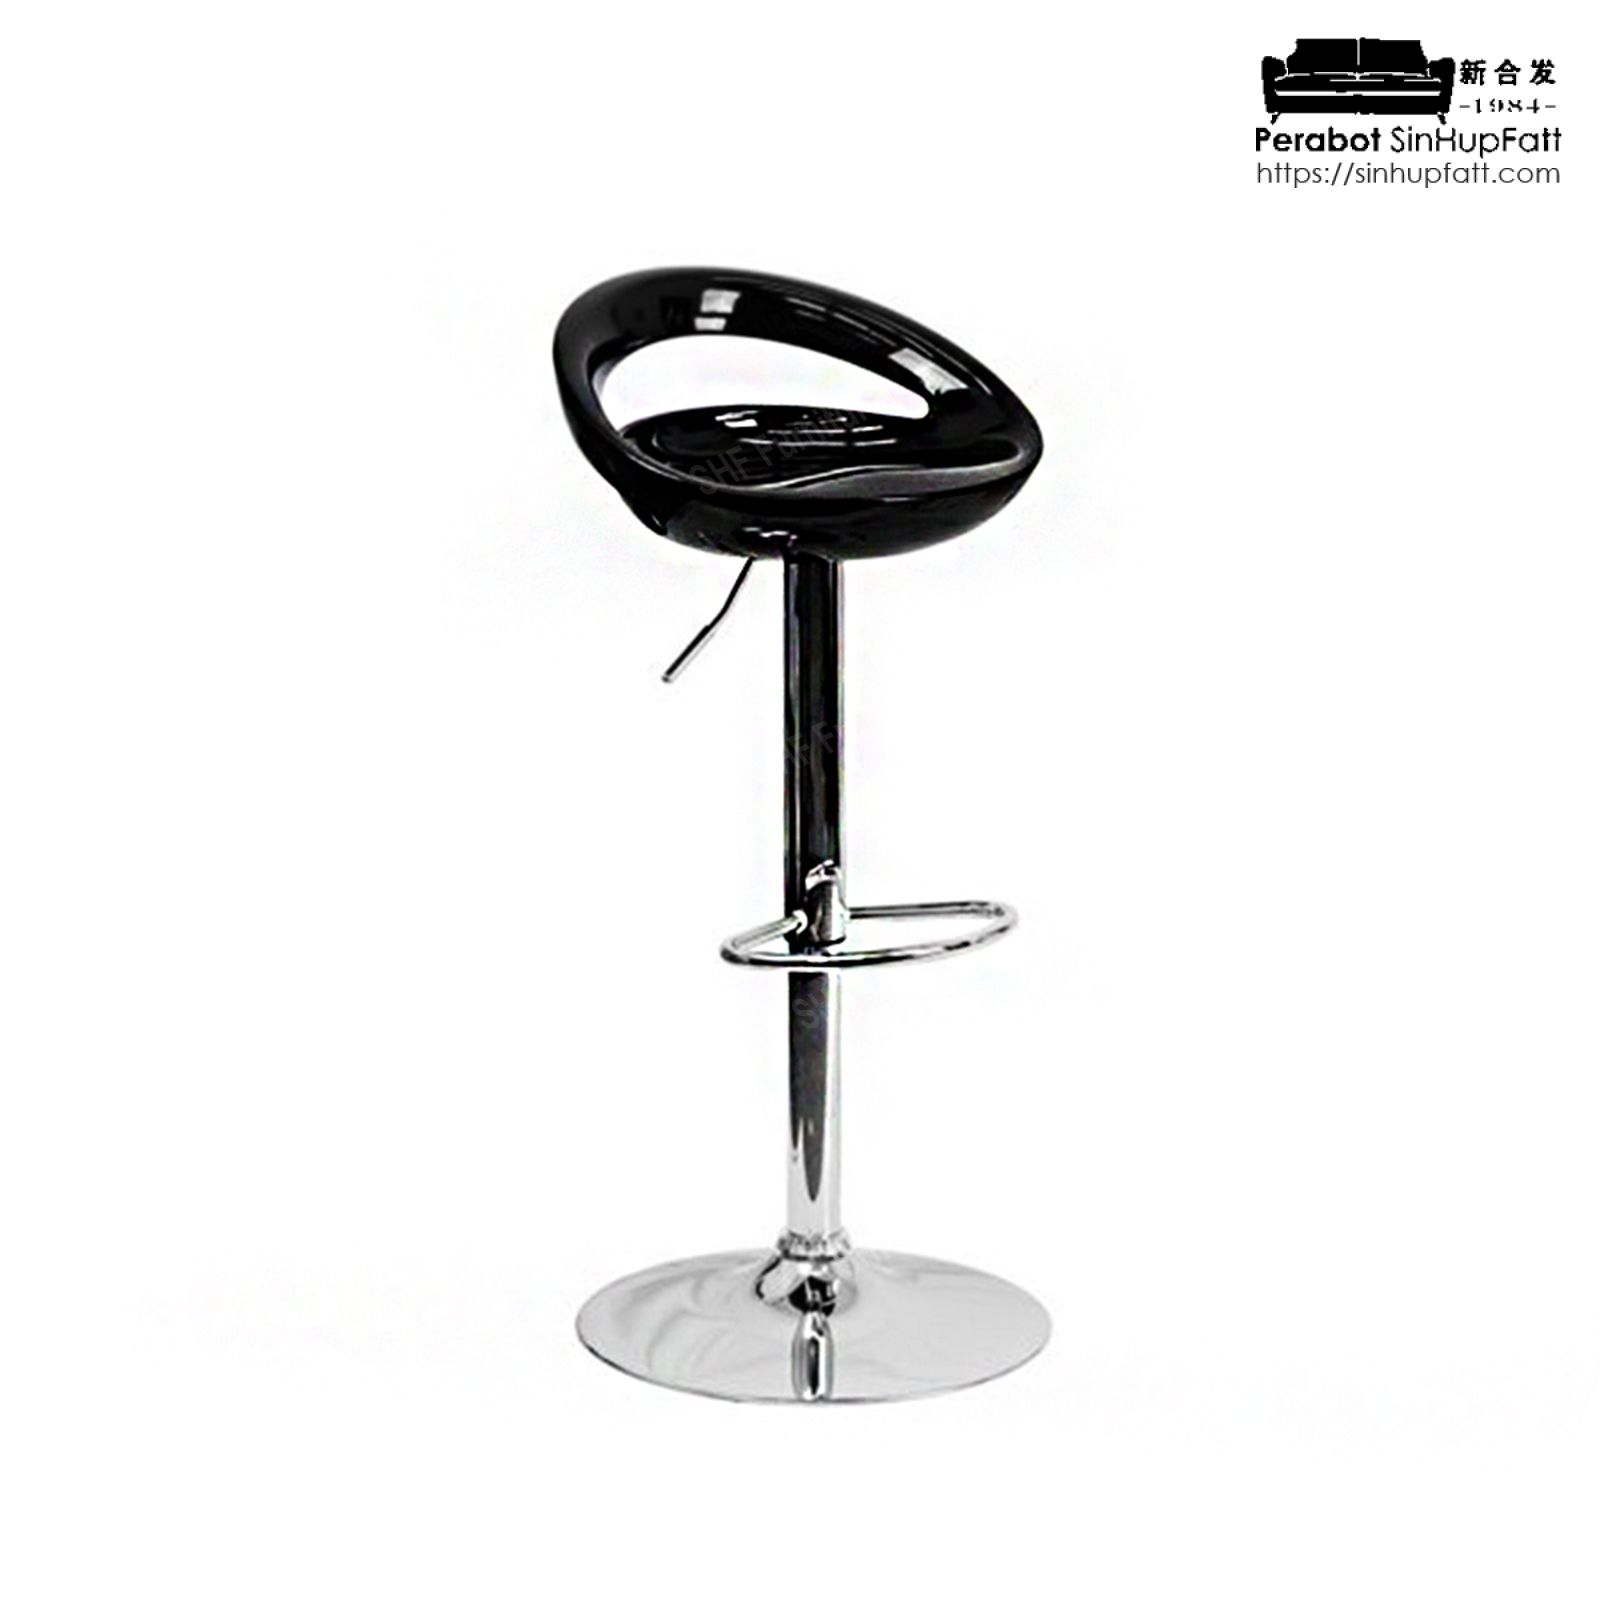 Magnificent Chrome Finished Metal Base Height Adjustable And 360 Degree Swivel Bar Stool With Abs Plastic Seat Bar Stool Evergreenethics Interior Chair Design Evergreenethicsorg